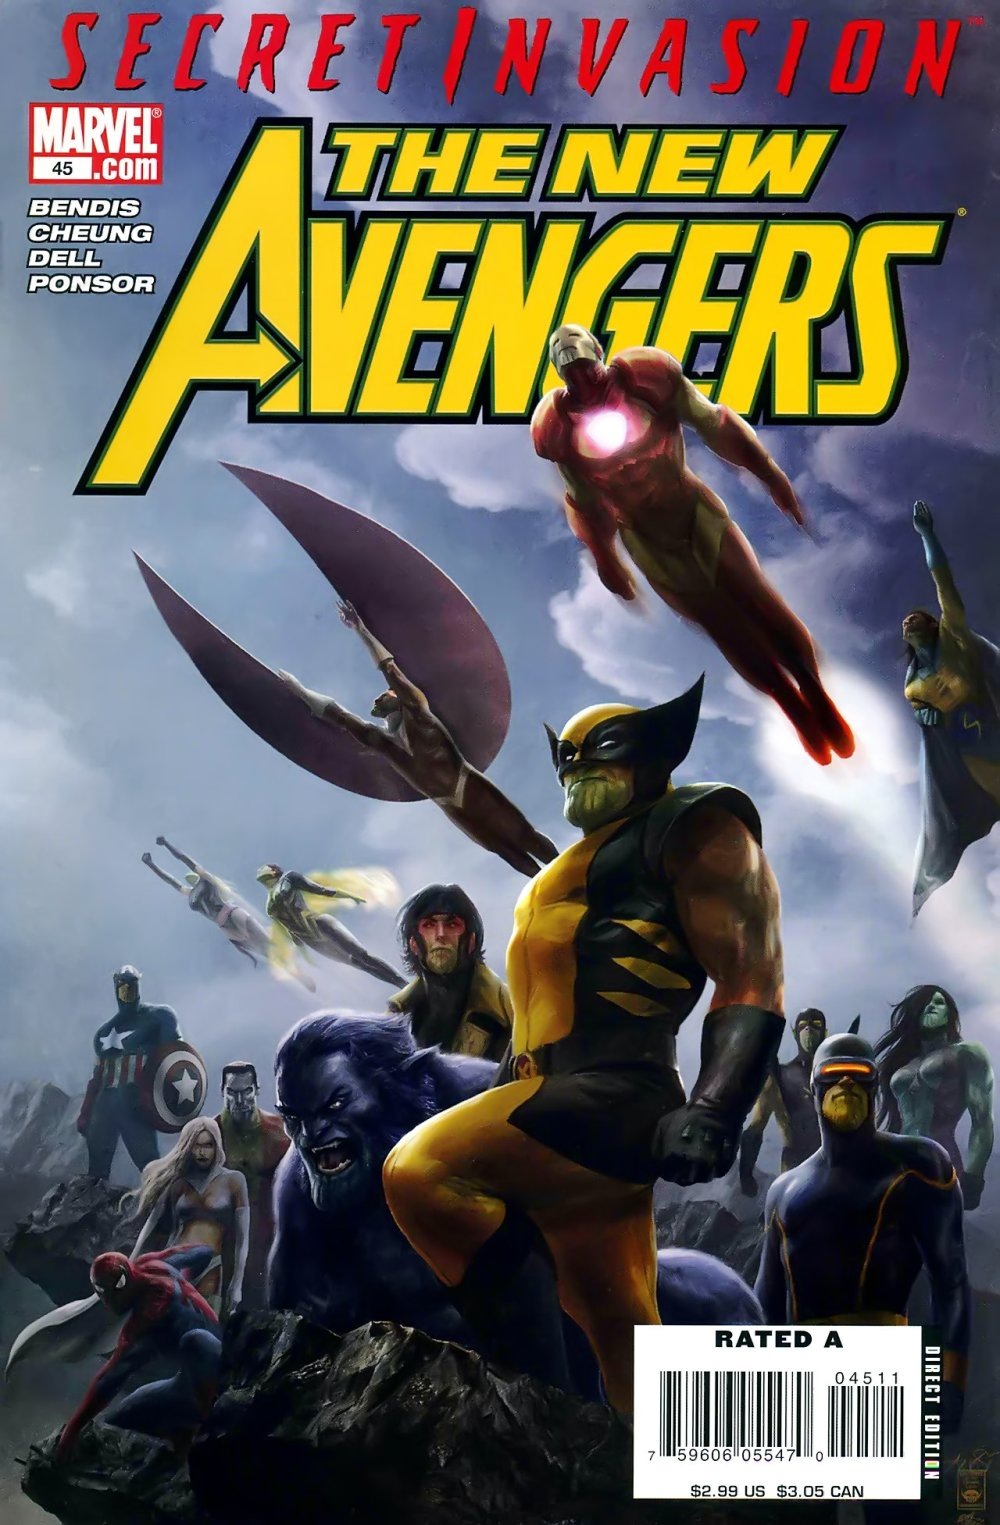 New Avengers [Marvel] V1 0045.jpg